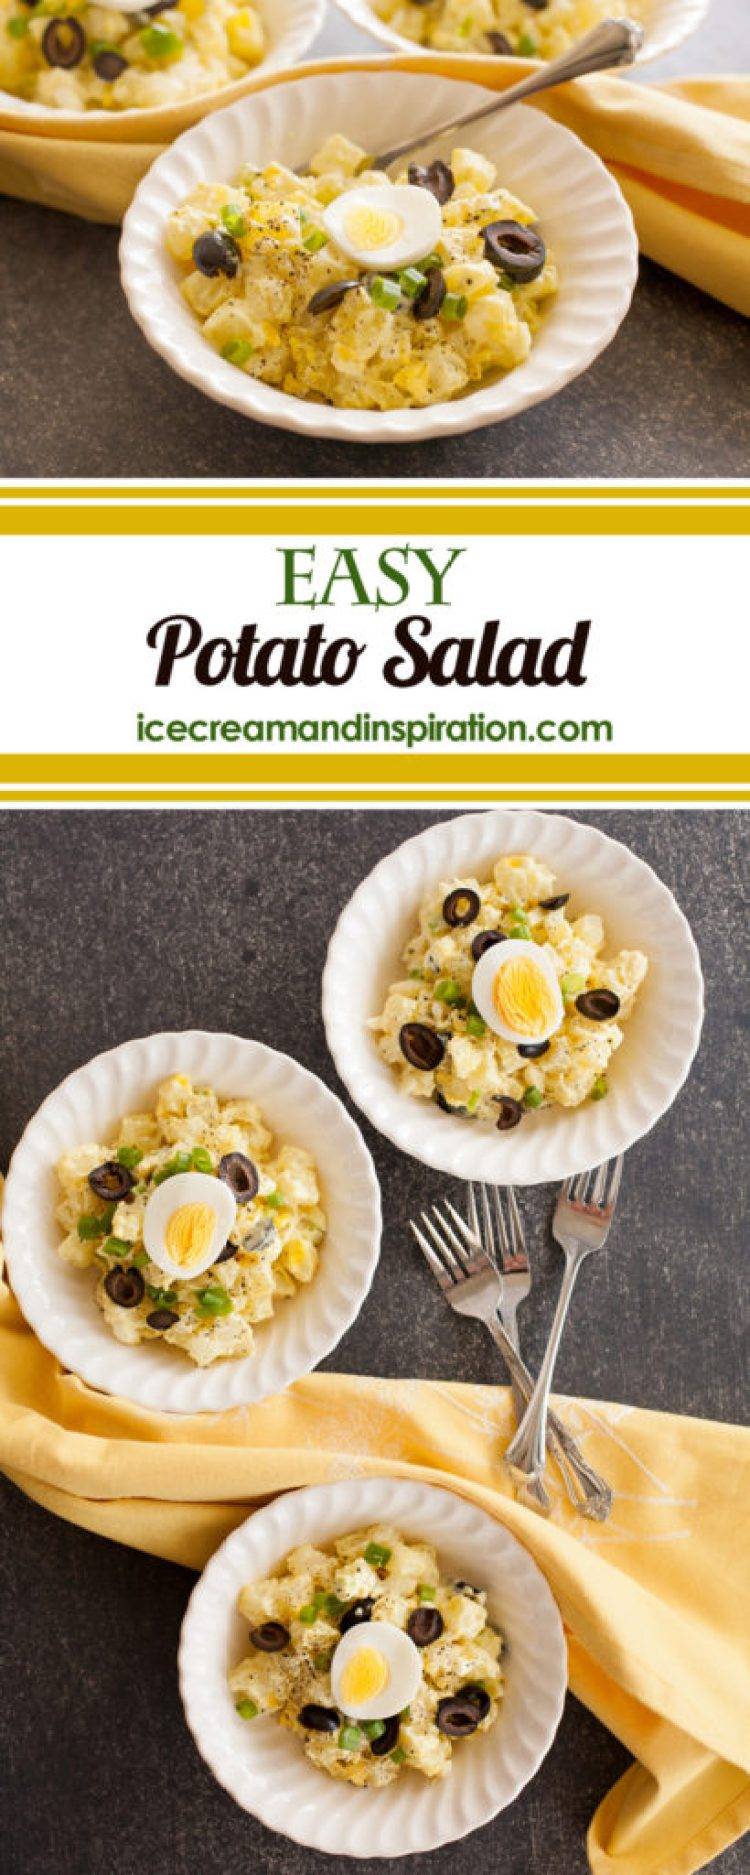 Classic, easy potato salad with simple ingredients. Lots of essential tips to make the best potato salad ever!